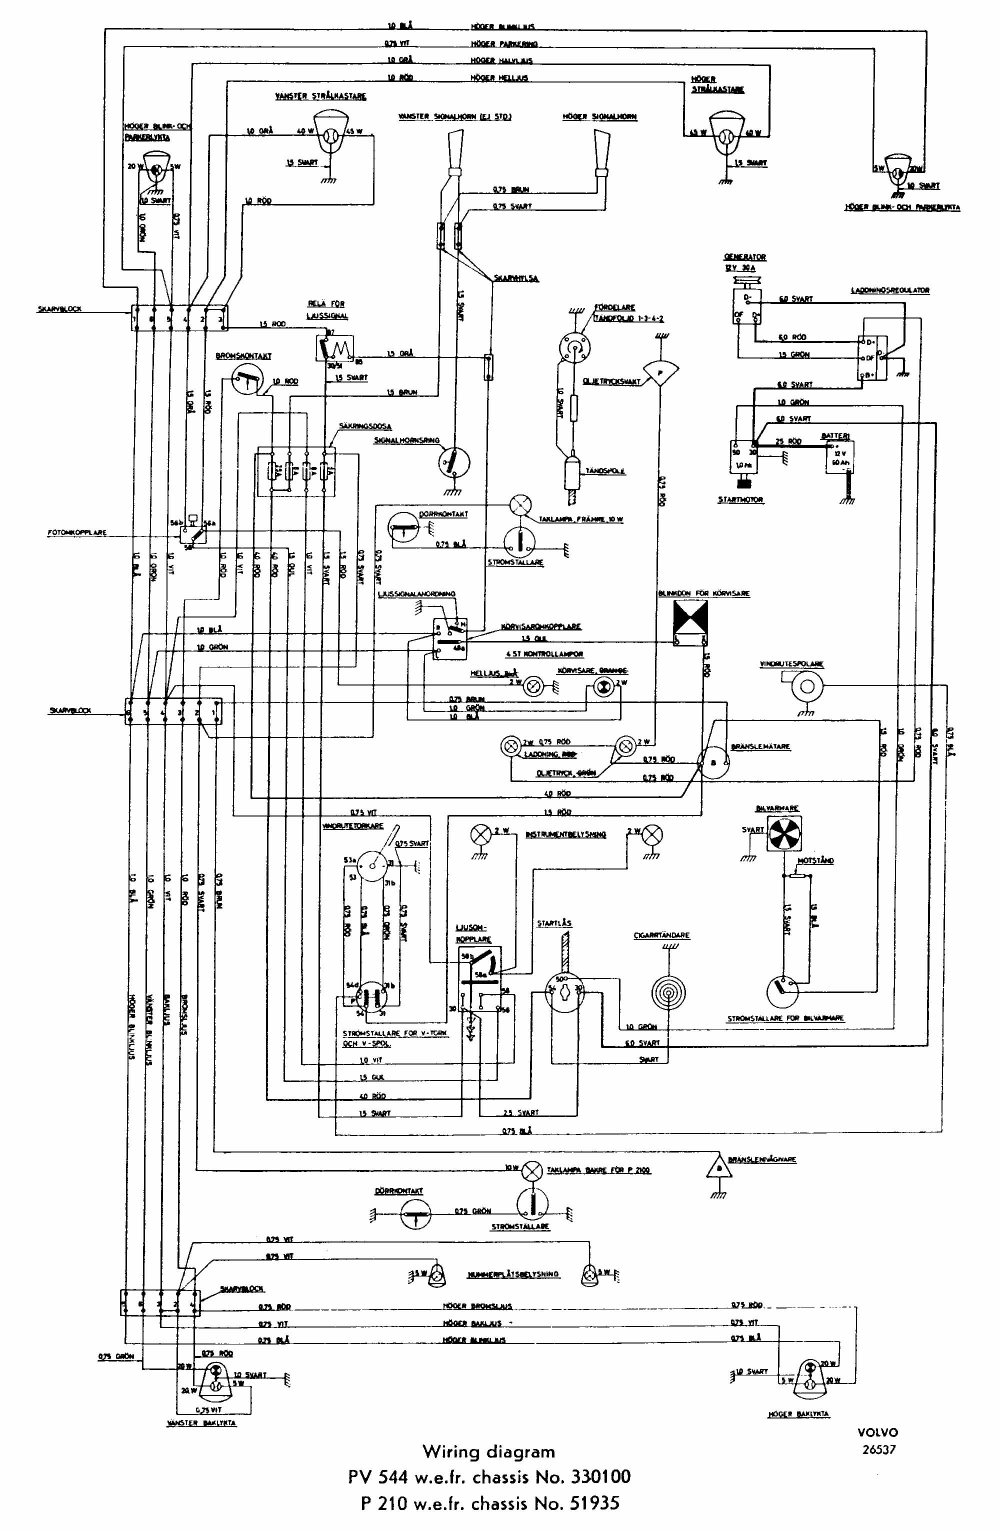 medium resolution of 2010 ford flex wiring diagram